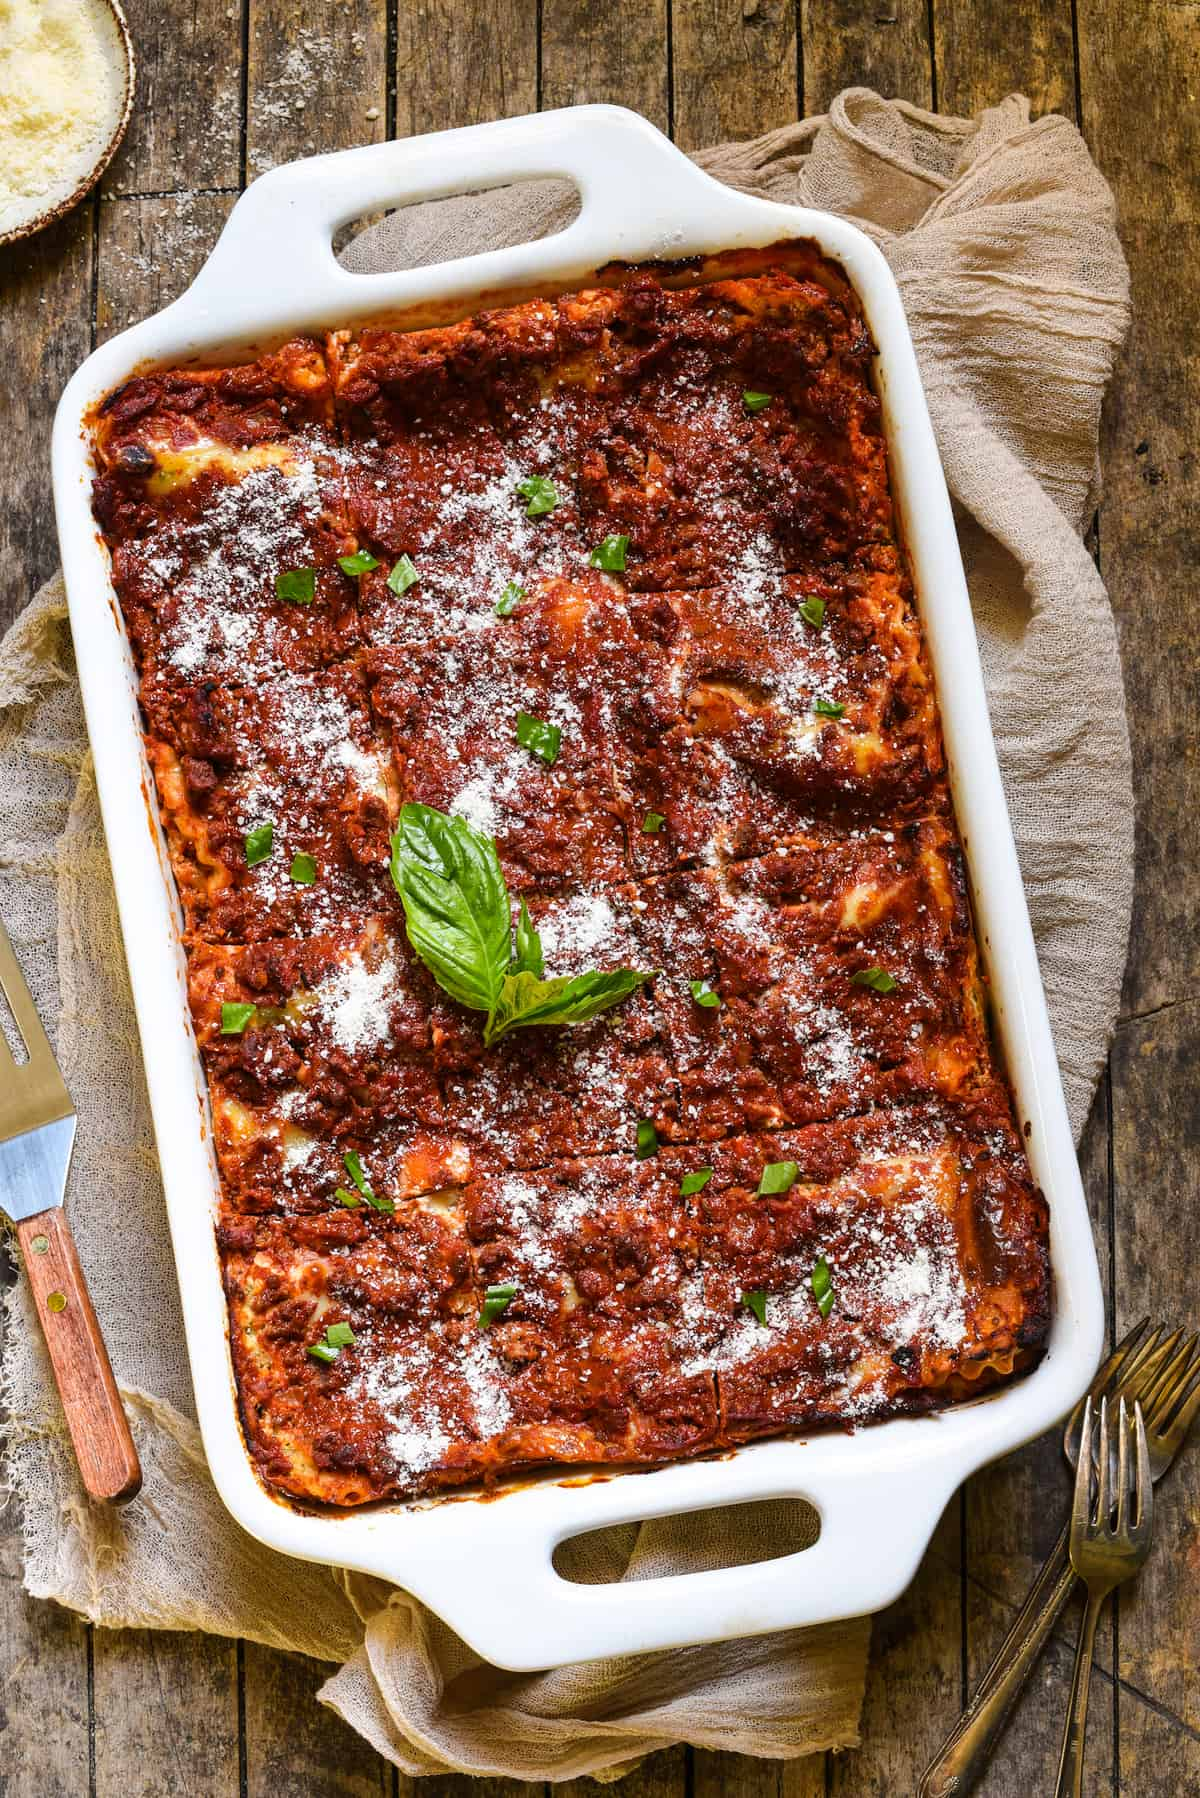 Mom's Lasagna with Cottage Cheese - A classic Midwestern noodle casserole. Layers of rich meat sauce, pasta, creamy filling and cheese will have the whole family coming back for seconds! | foxeslovelemons.com